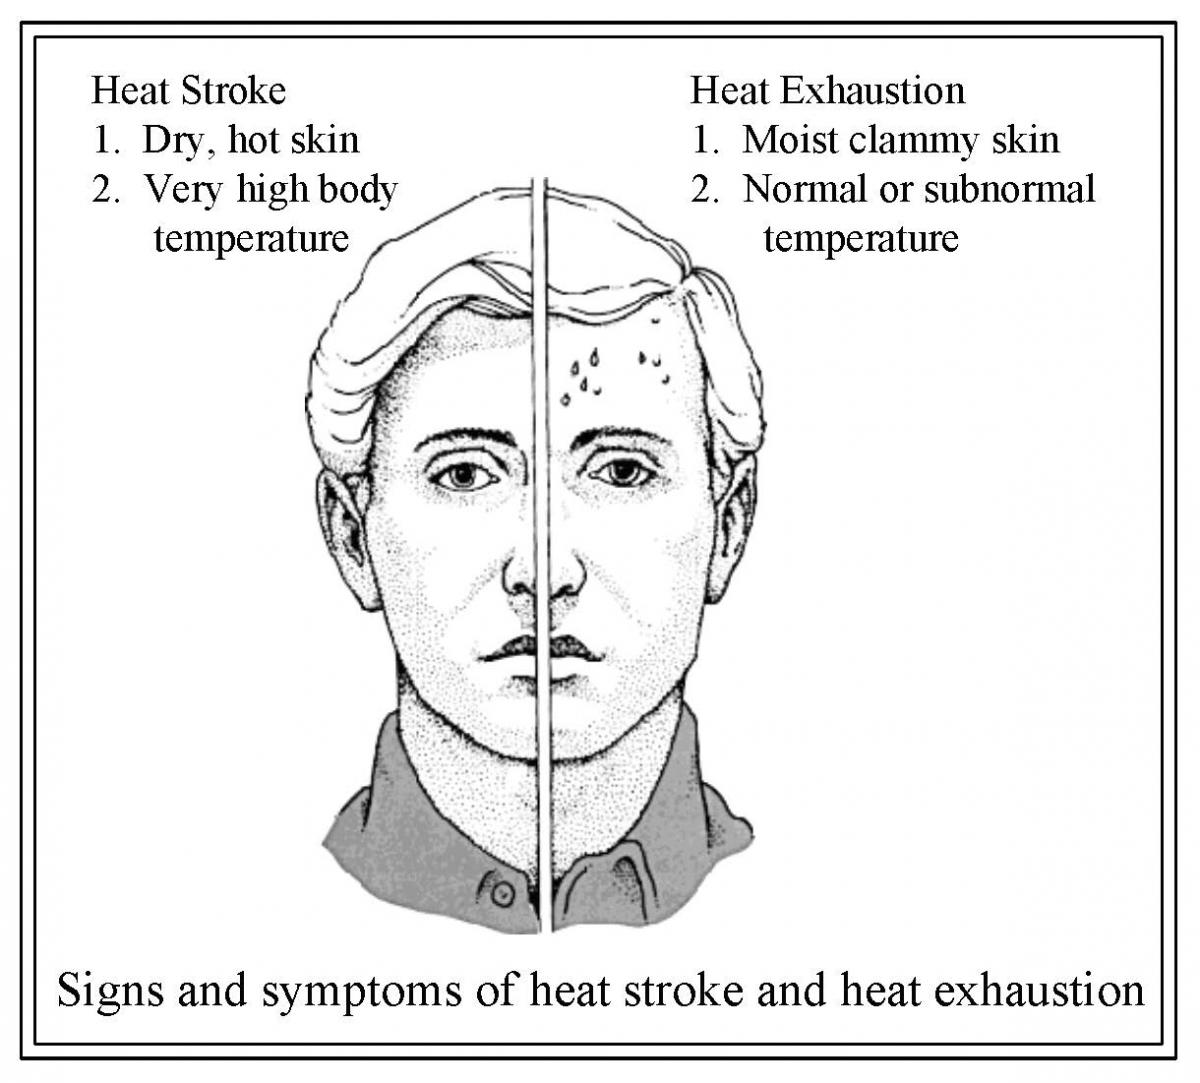 Signs and symptoms of heat stroke (dry, hot skin and very high body temp) and heat exhaustion (moist, clammy skin and normal or subnormal body temp)